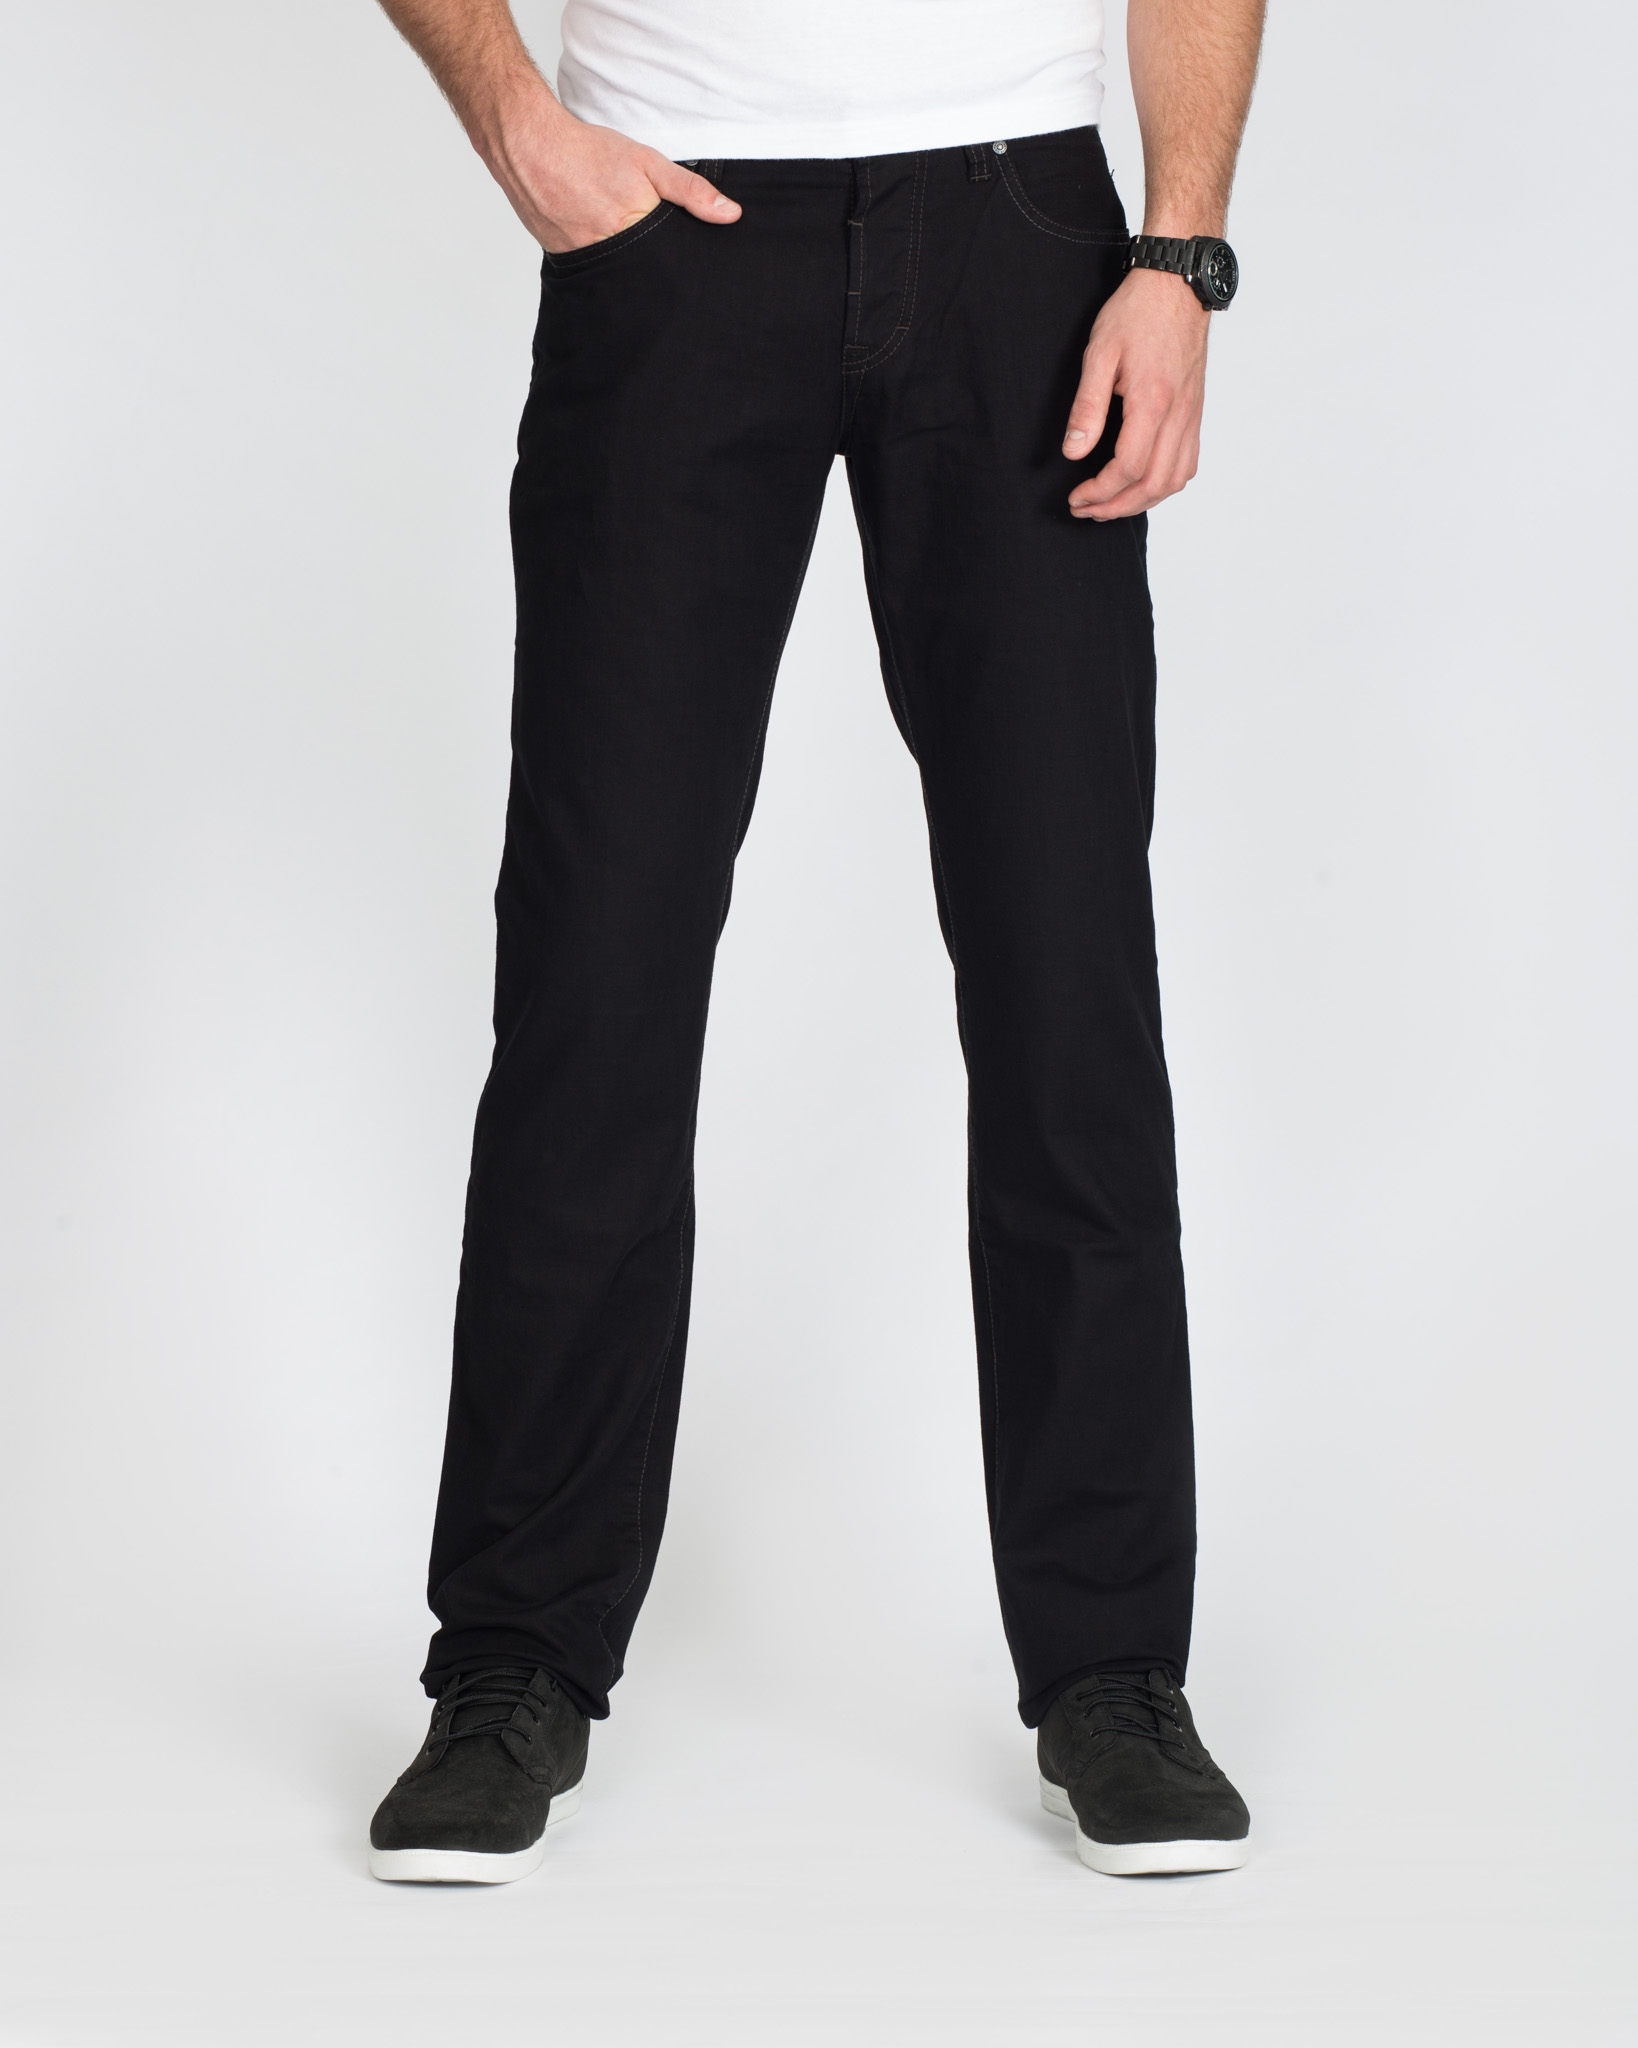 Camel Active Woodstock Black Stretch Tall Jeans